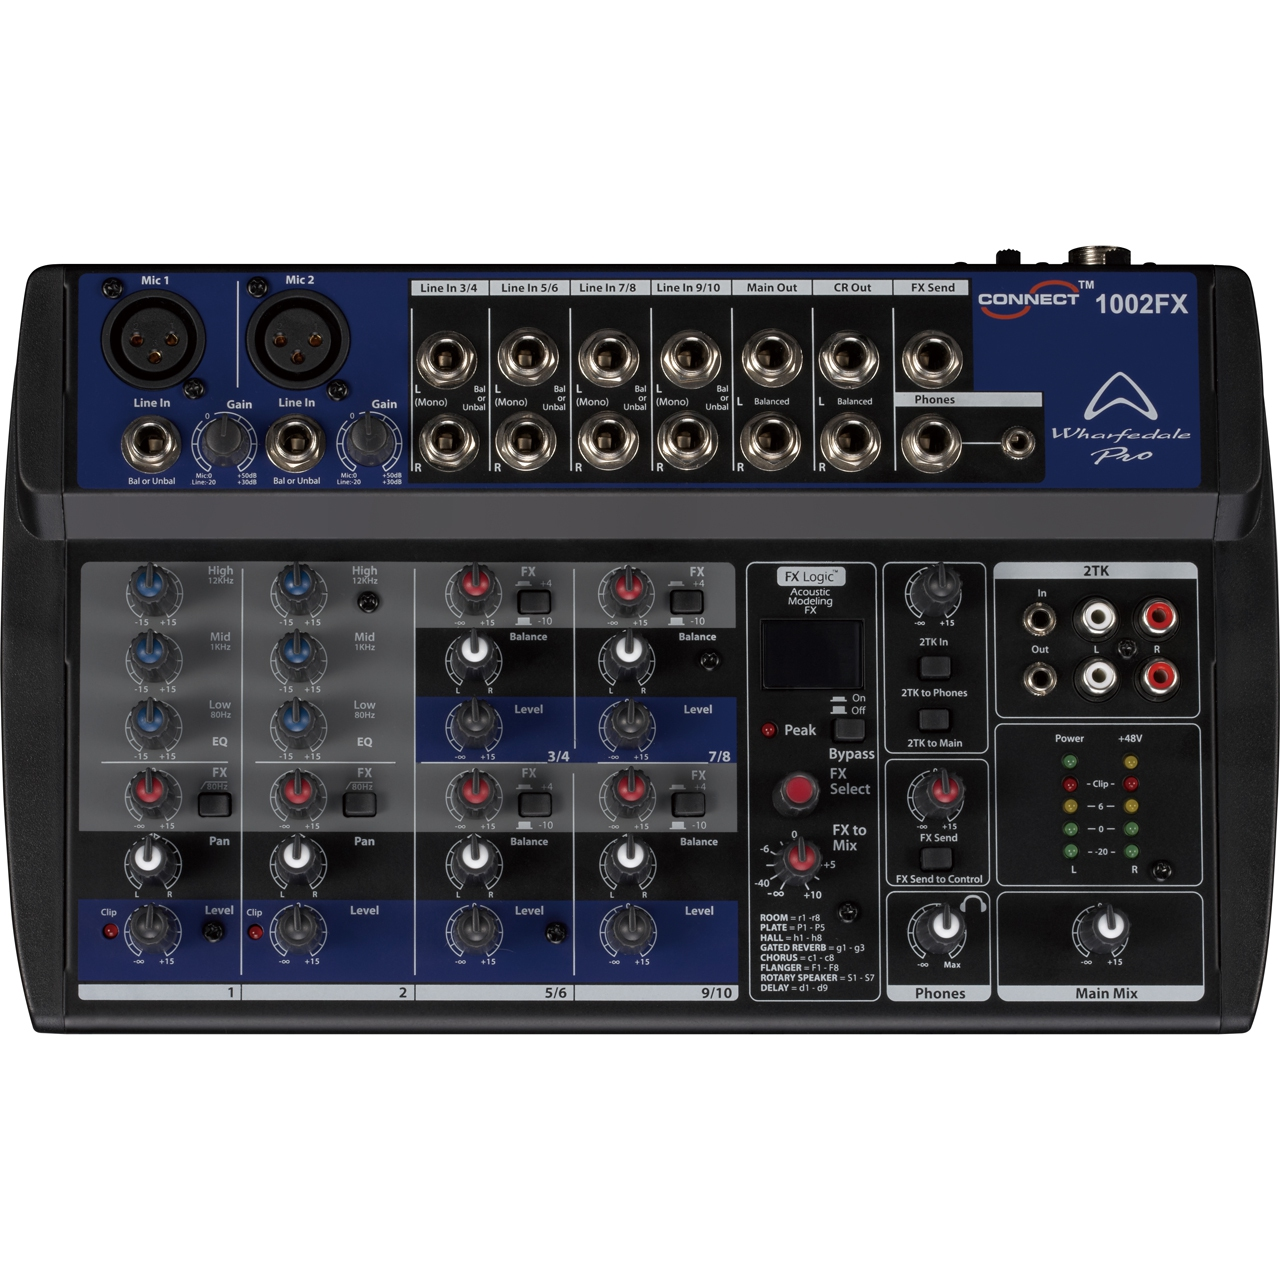 Wharfedale Pro Connect 1002fx Mixers